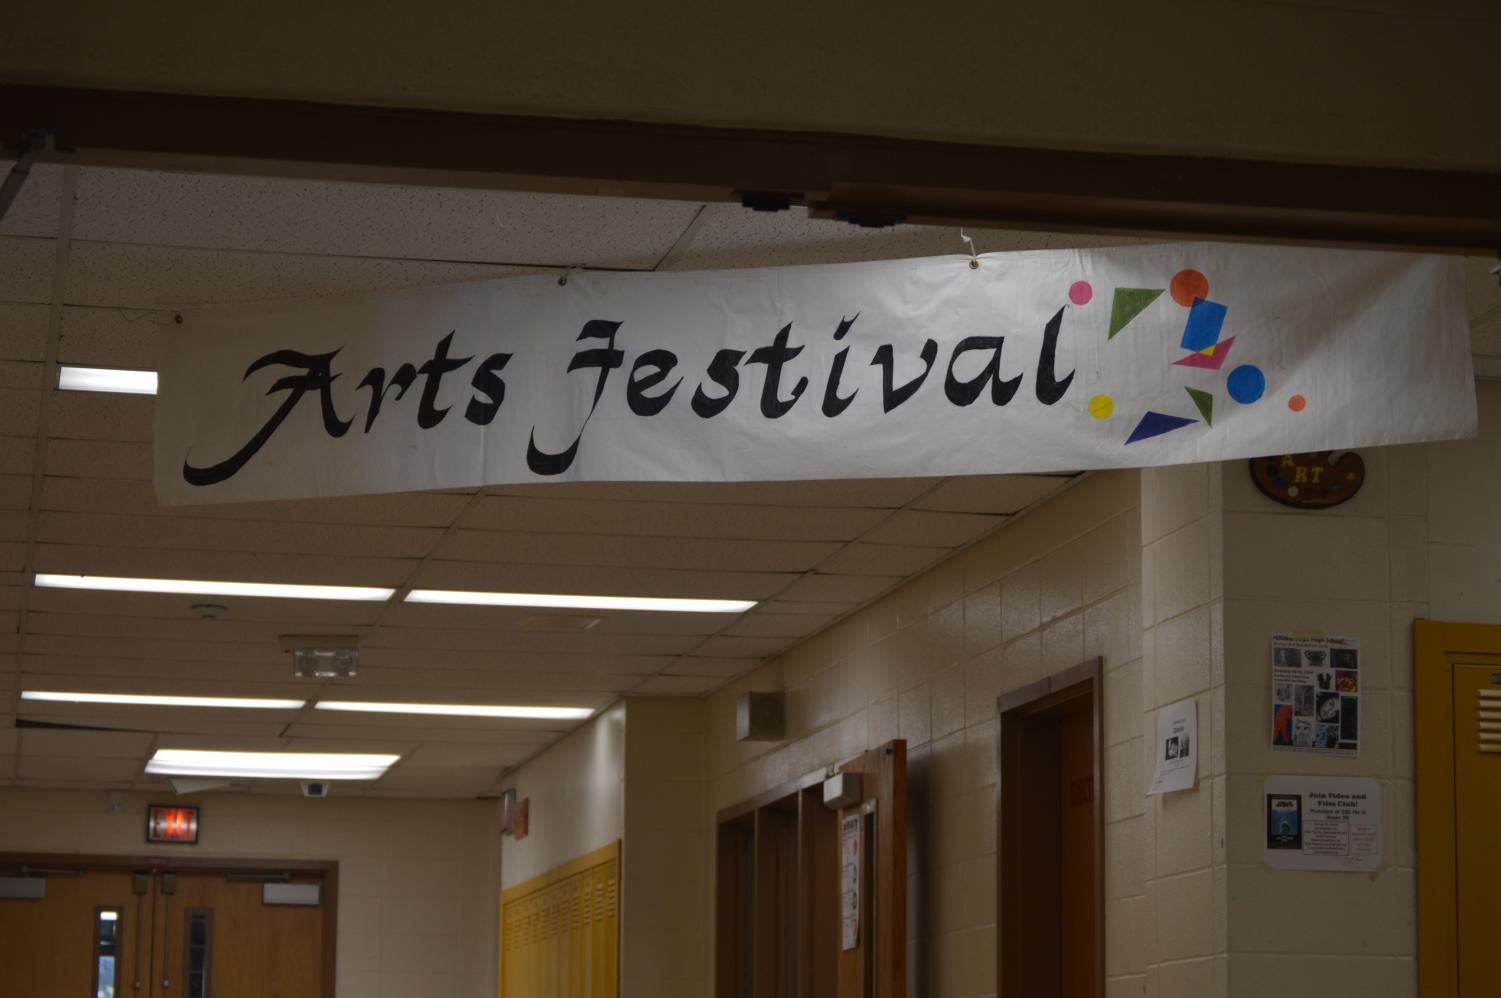 The Winter Arts Festival showcased an assortment of talented art works from first semester art students.